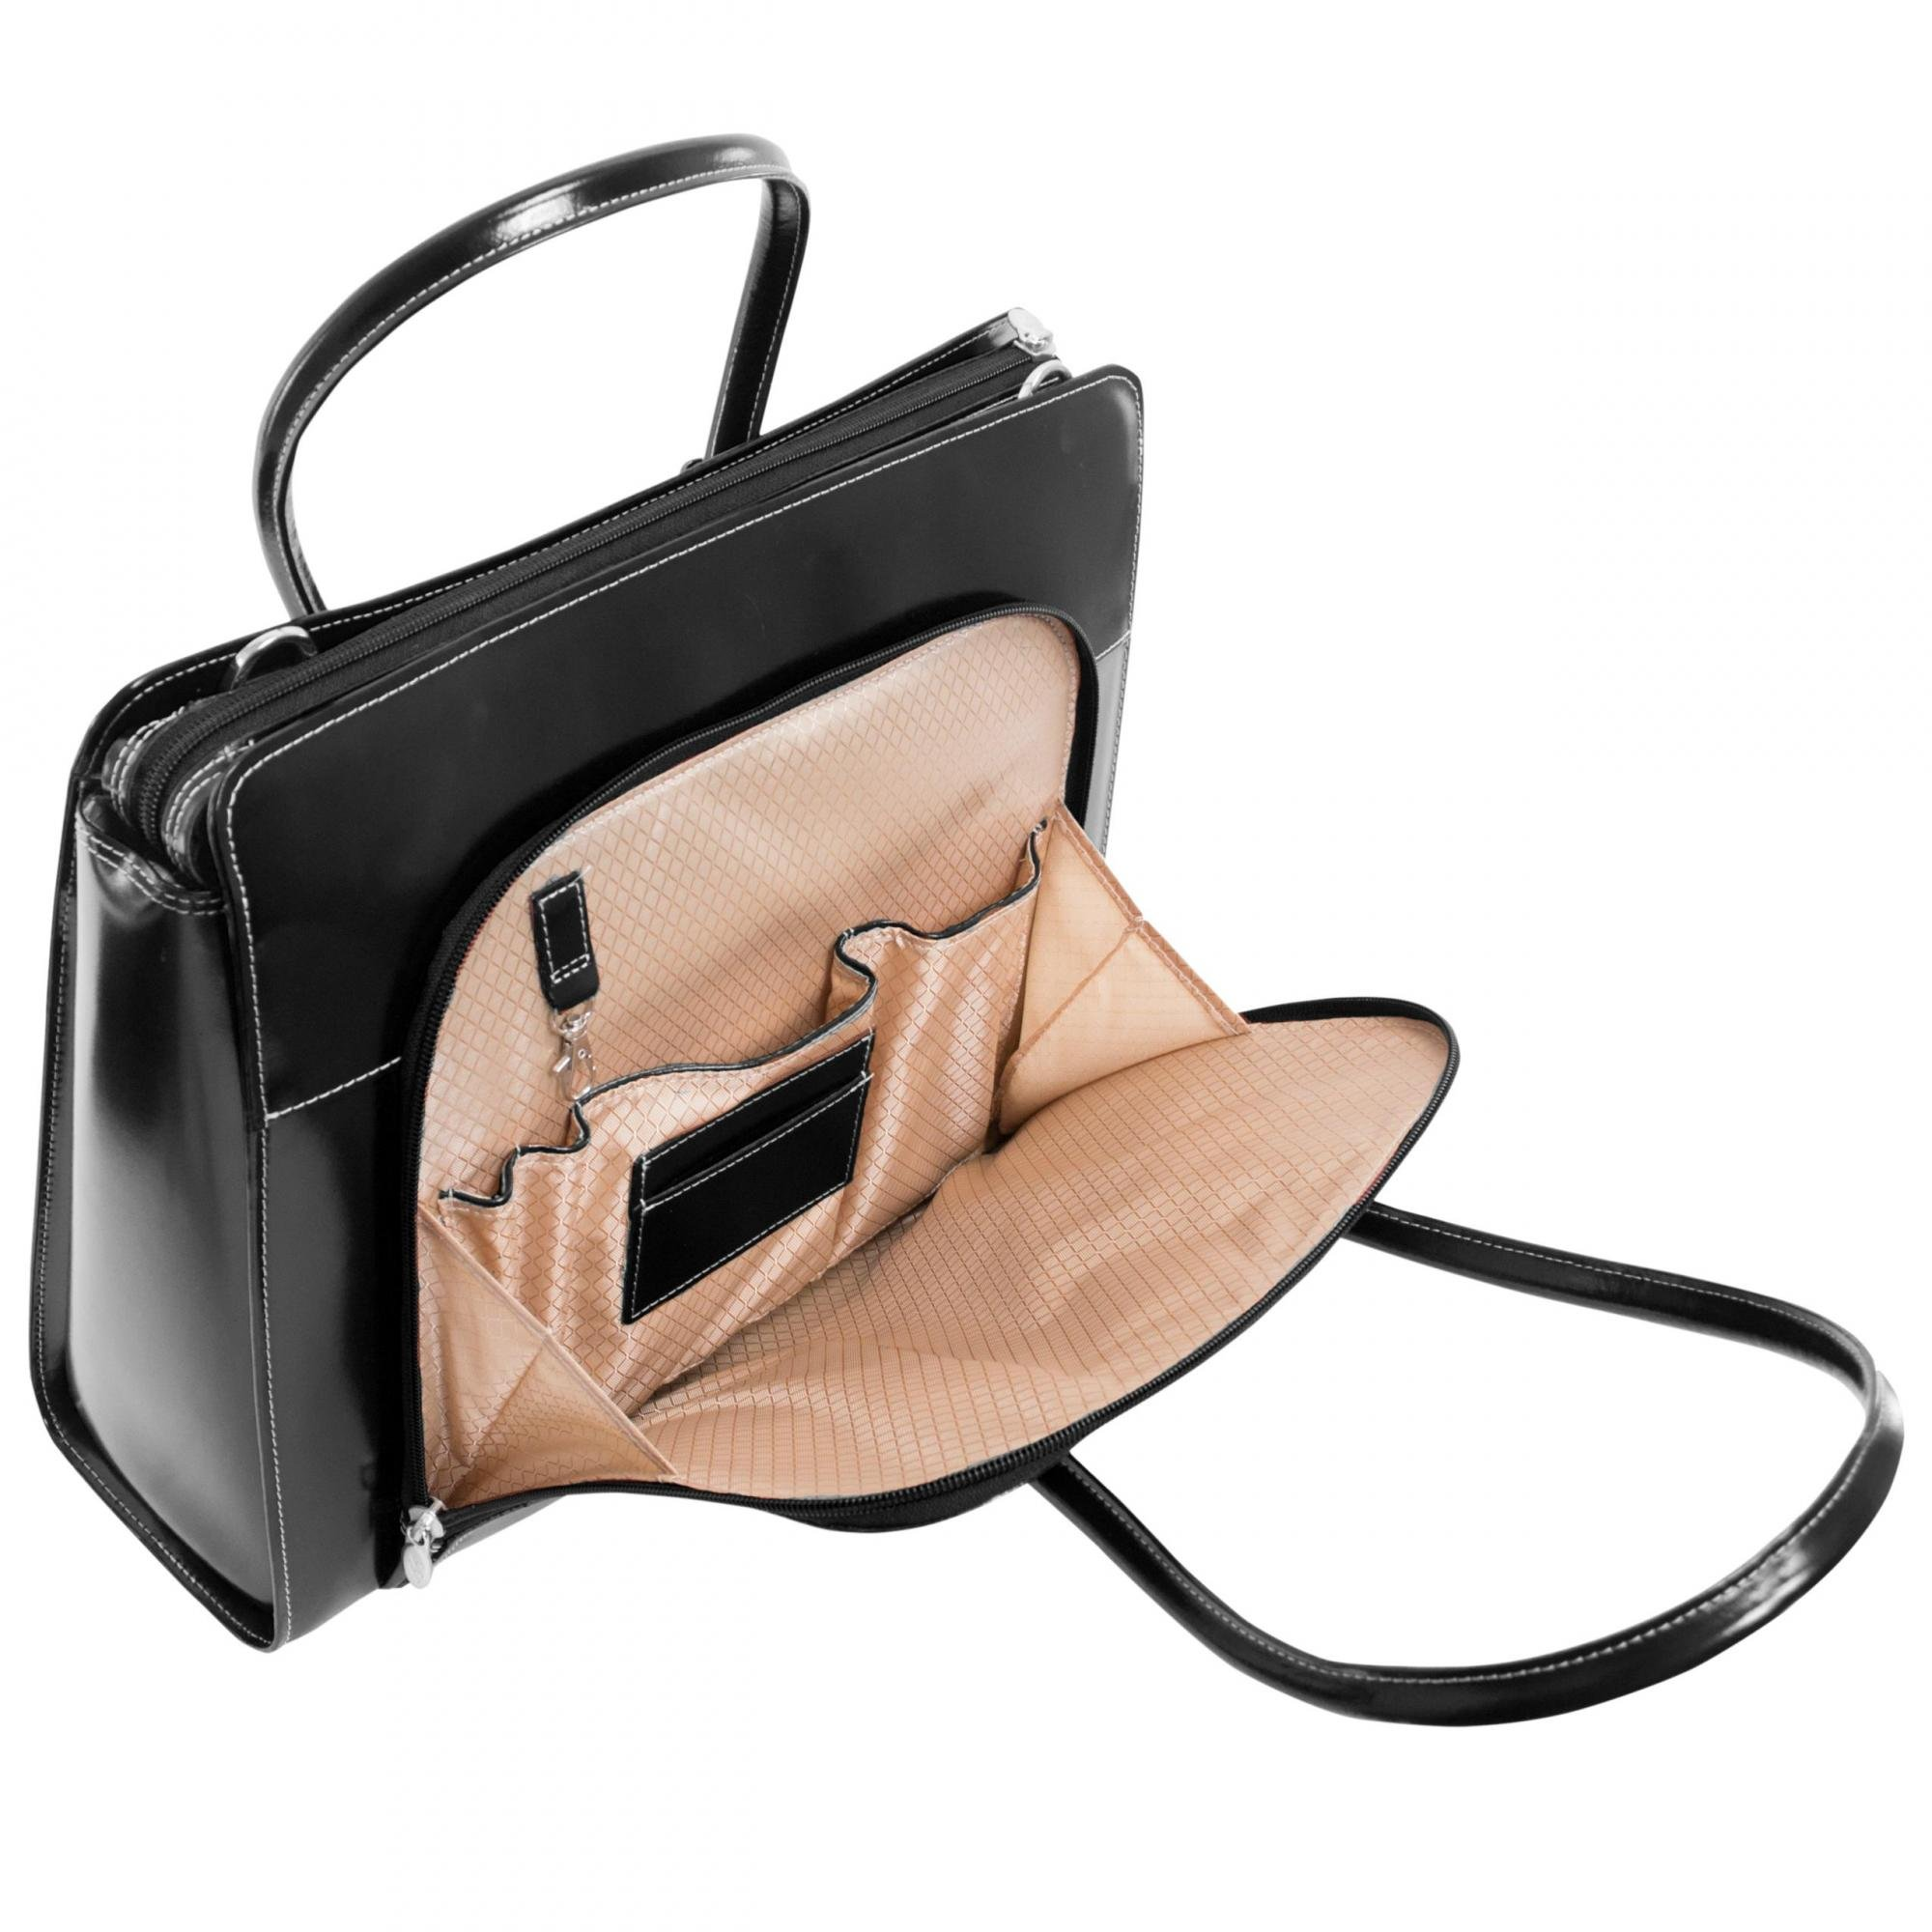 McKleinUSA LAKE FOREST 94335 Black Leather Women's Case w/ Removable Sleeve by McKleinUSA (Image #6)